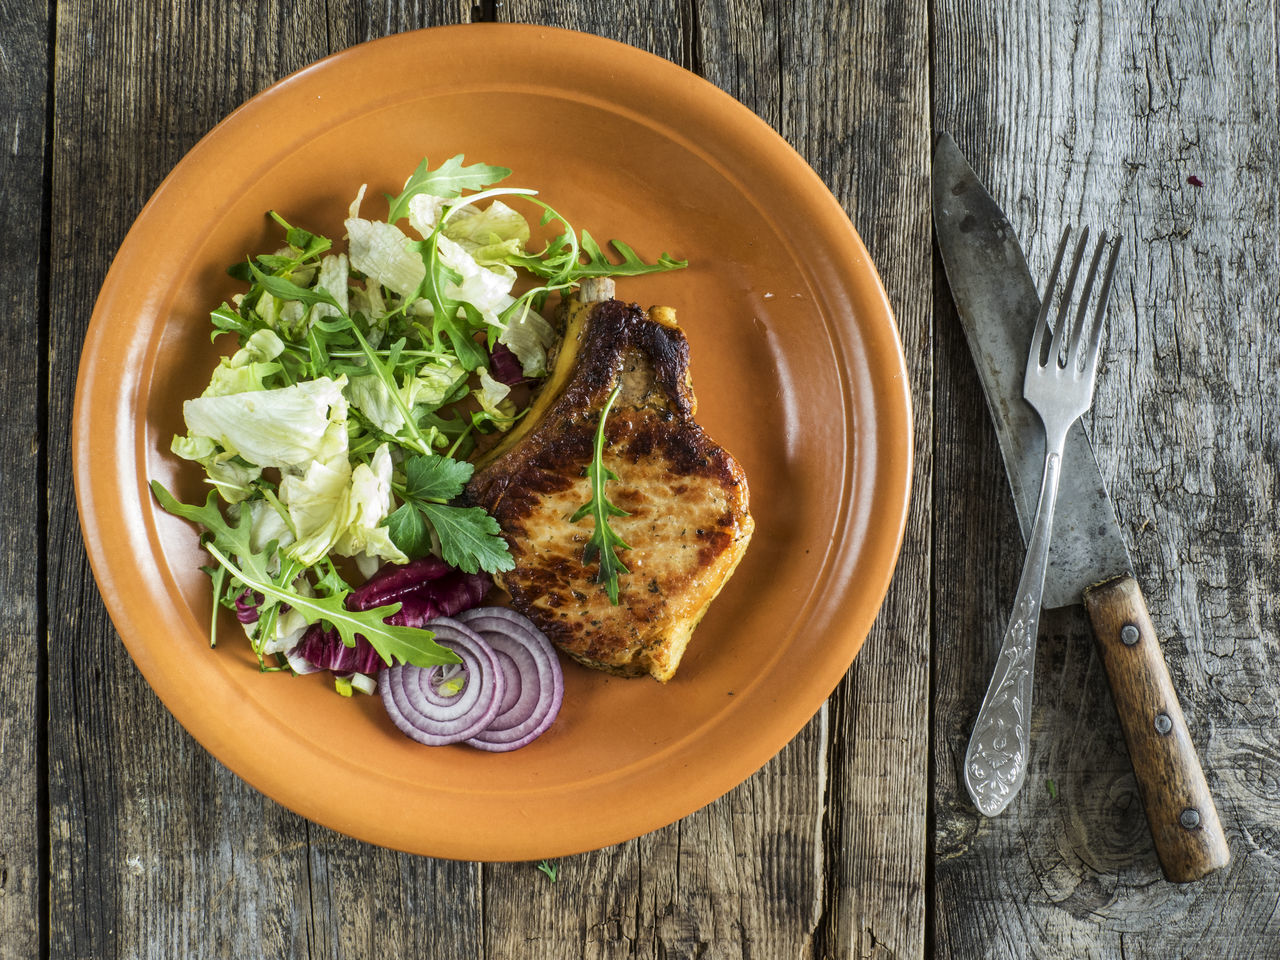 Roasted pork chop on a plate with a green salad, red onion on an old wooden weathered table Arugula Chop Food Food And Drink Freshness Garnish Green Meal No People Old Onion Plate Pork Ready-to-eat Relaxing Roast Chicken Roasted Salad Spice Table Weathered Wood - Material Wooden